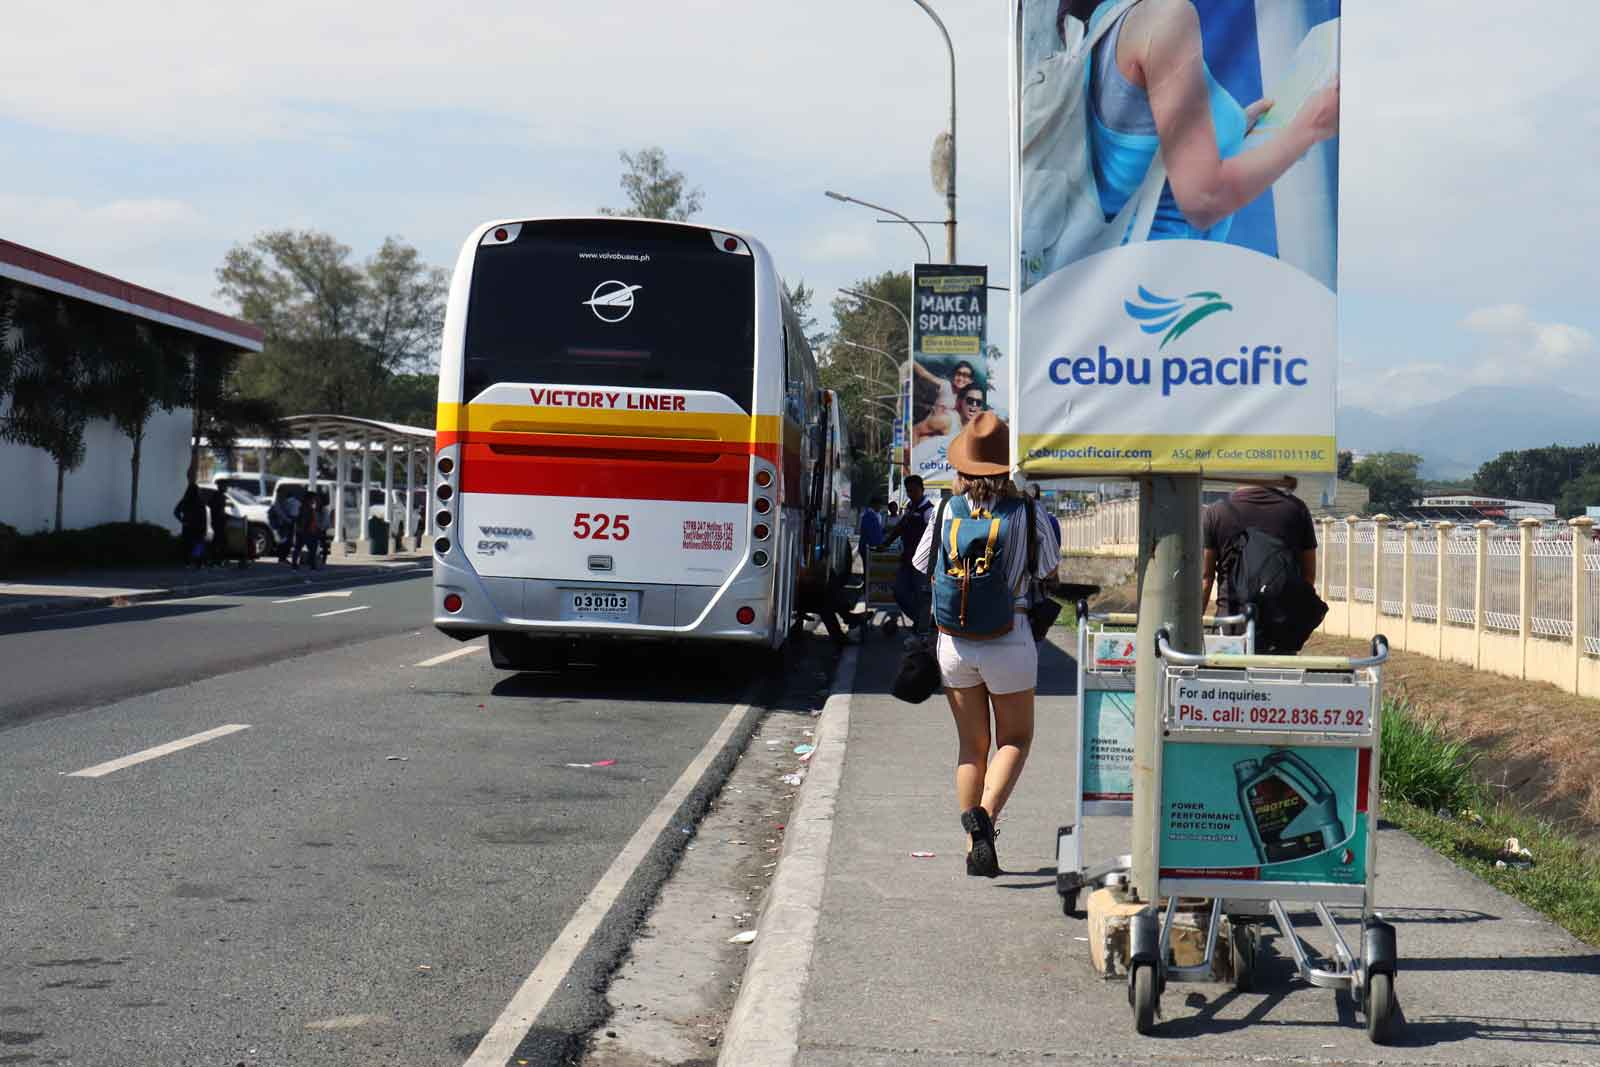 point to point bus service